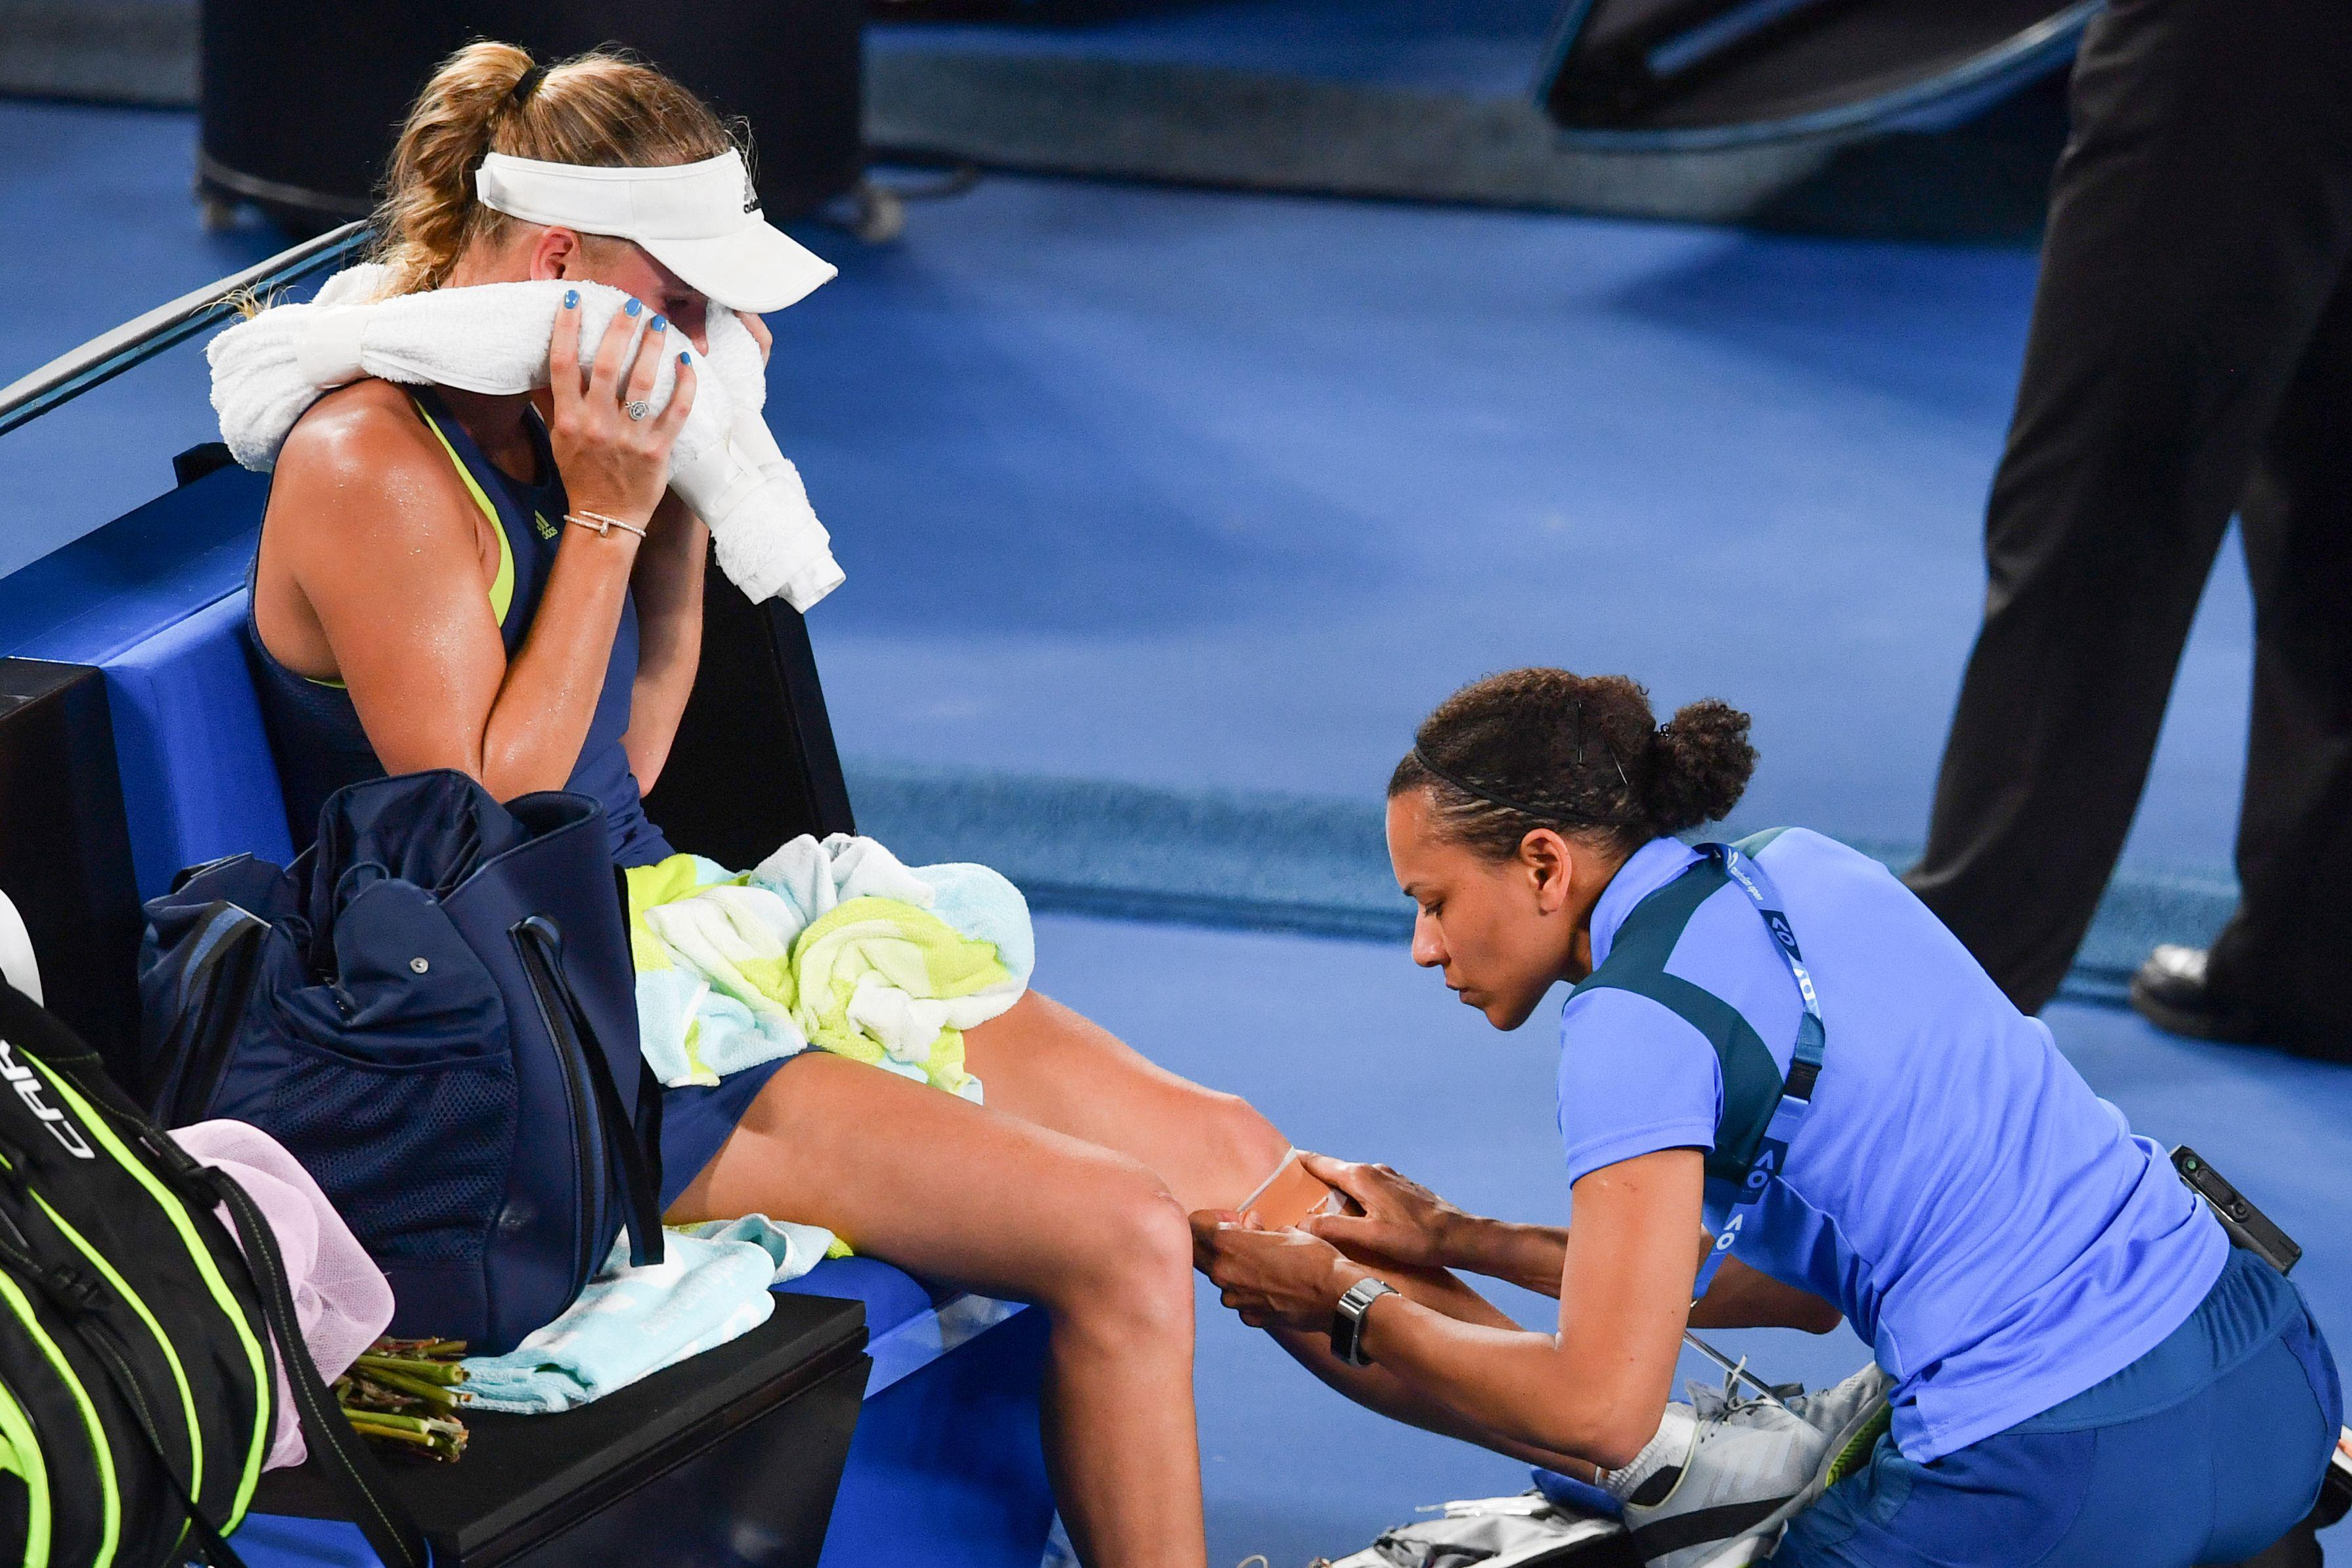 Caroline Wozniacki also received medical assistance during final